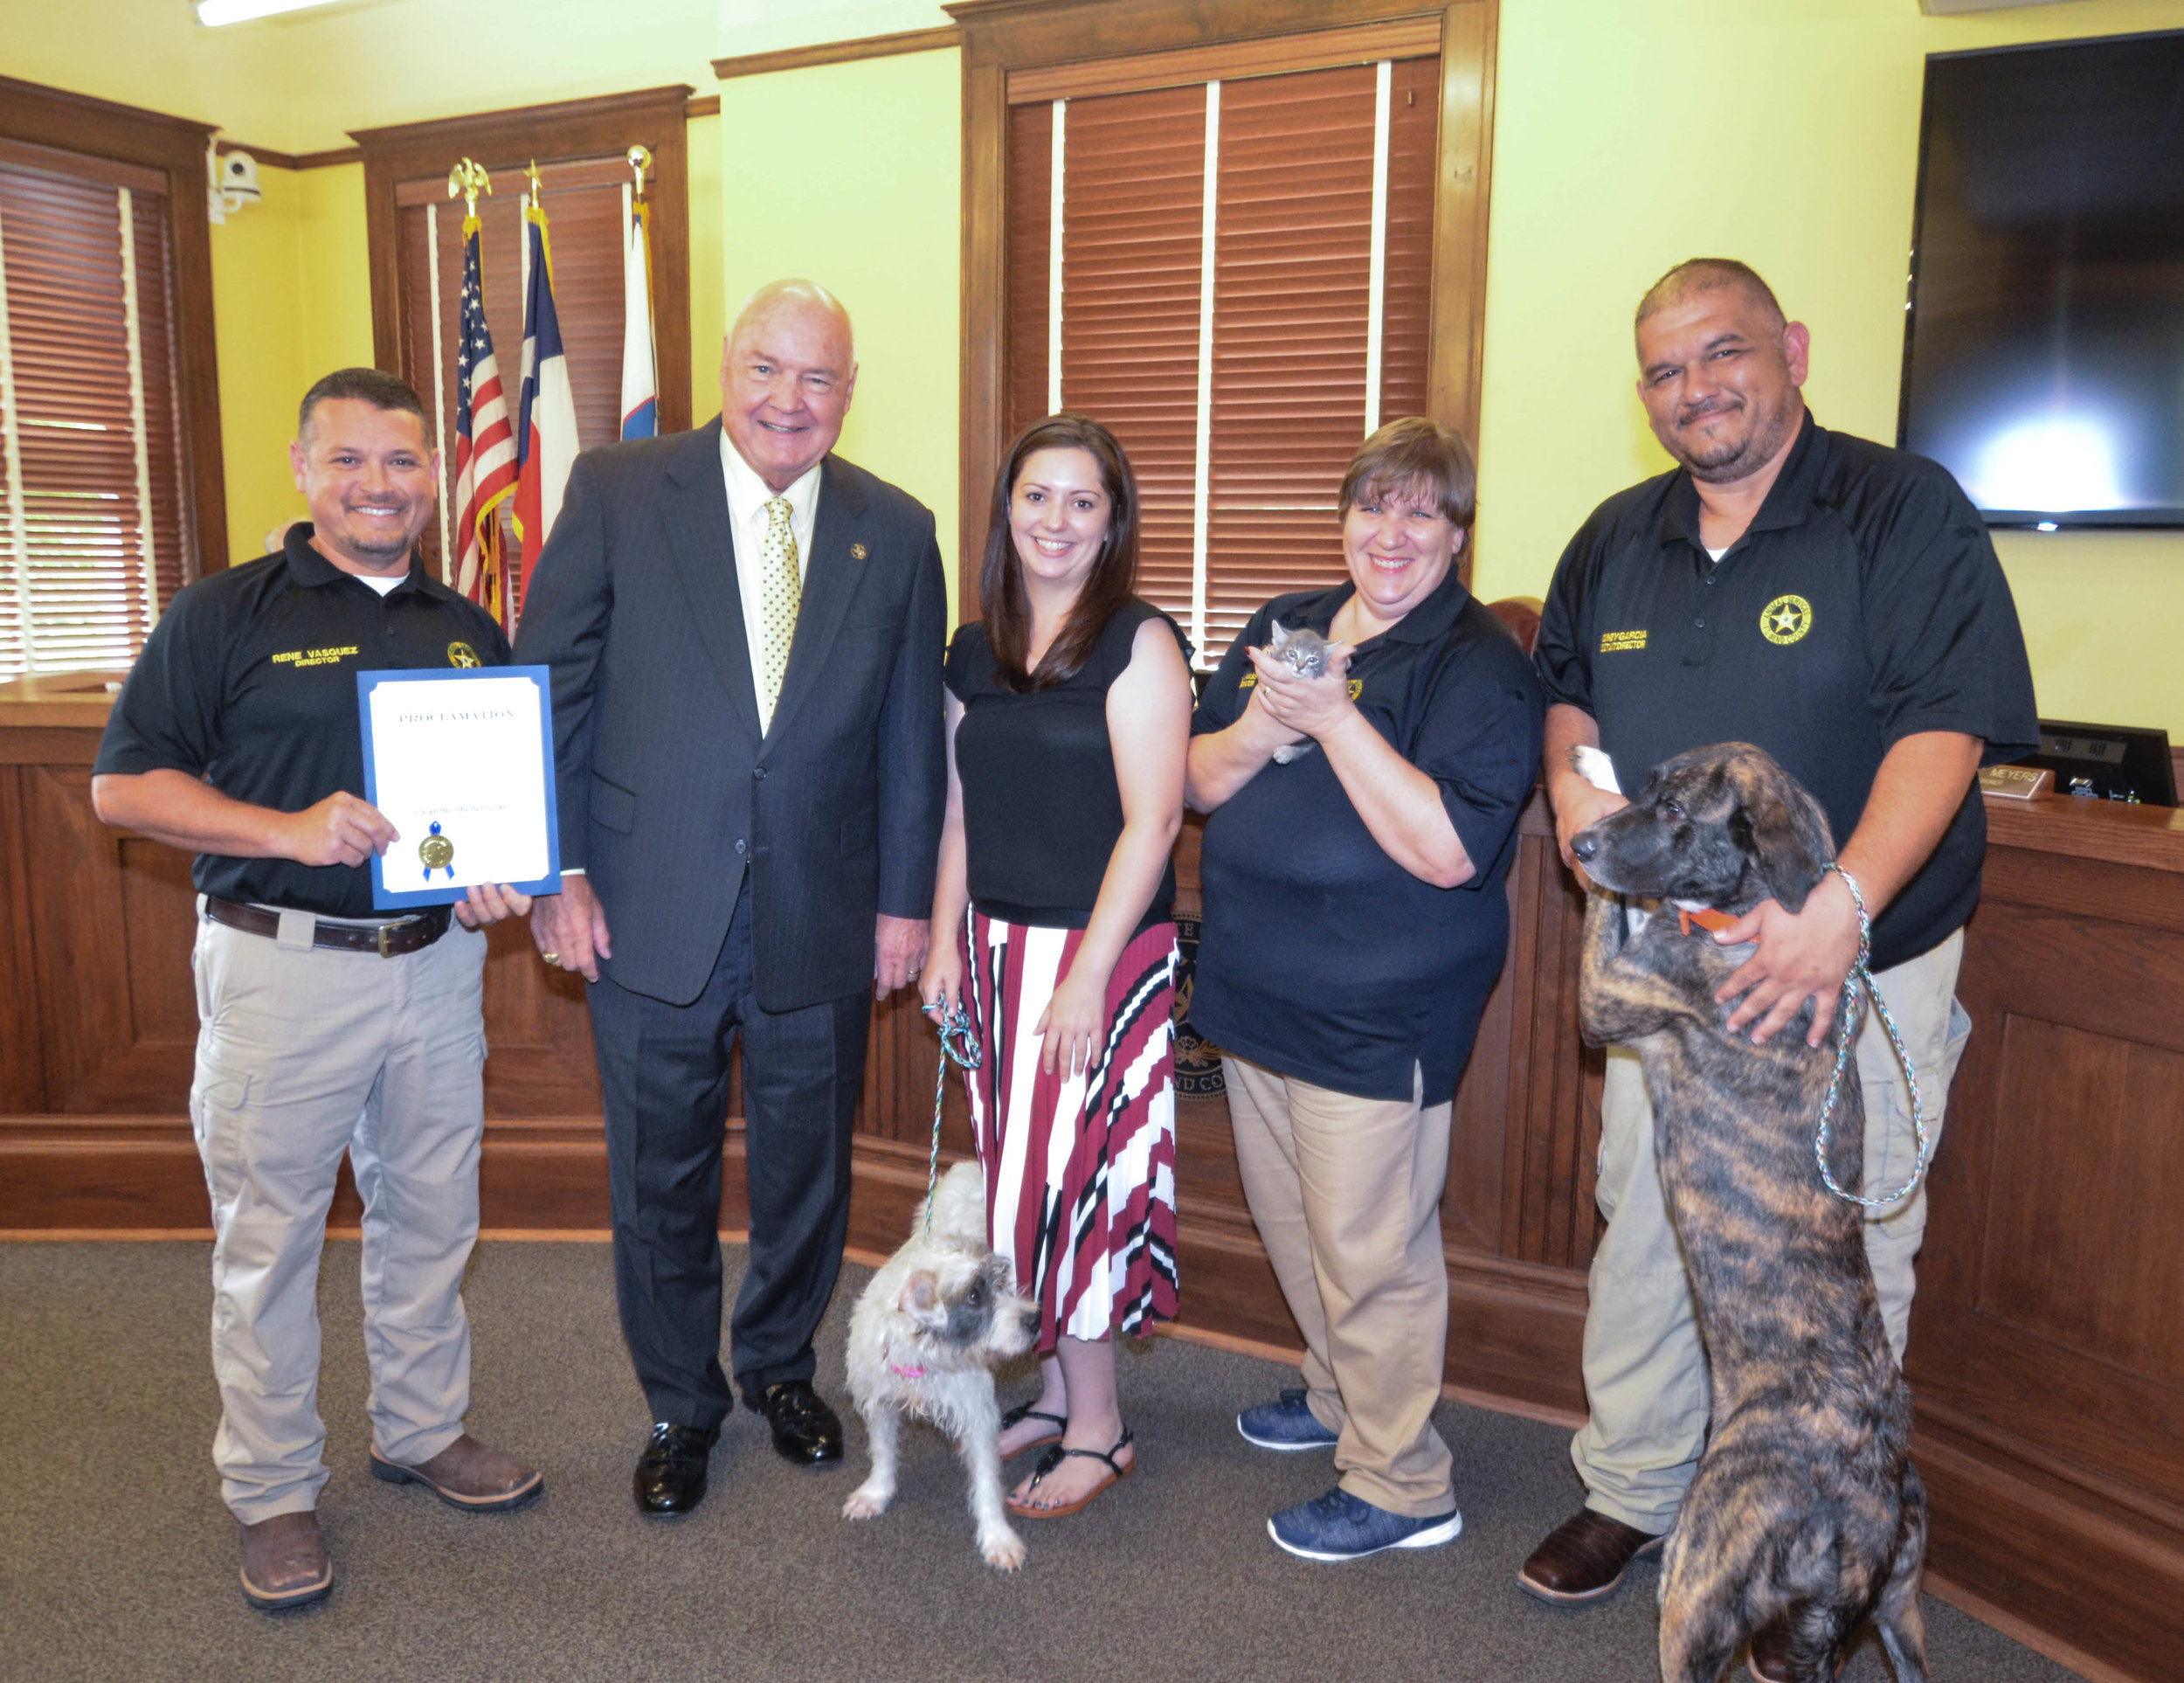 Pictured from Left to Right: Rene Vasquez, Fort Bend Animal Services Director; Fort Bend County Judge Bob Hebert; Dr. Andrea Muegge, Fort Bend Animal Services Veterinarian; Anna the Pup, In Search of Good Home; Barbara Vass, Fort Bend Animal Services Adoption Coordinator; Smokey the Kitty, In Search of Good Home; Rodney Garcia, Fort Bend Animal Services Assistant Director; Tigger the Pup, In Search of Good Home.